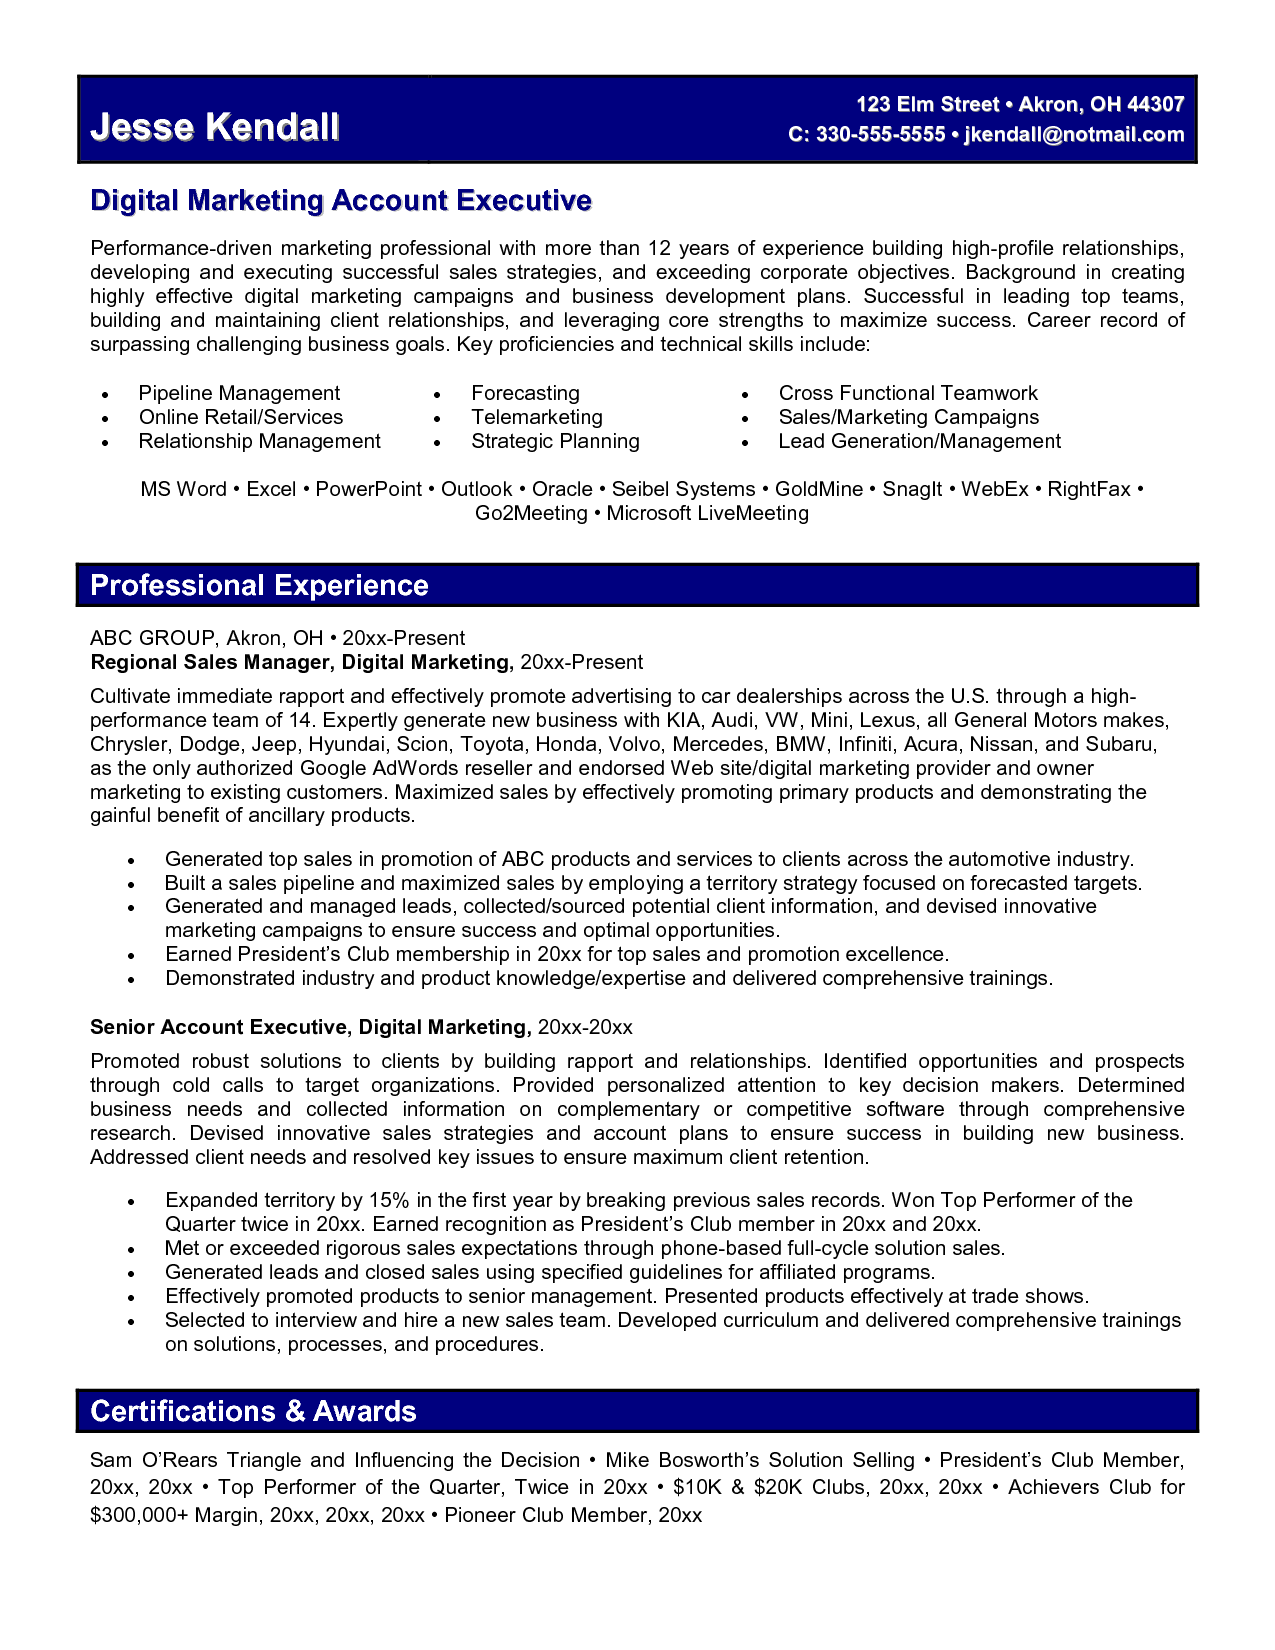 Digital Marketing Resume Fotolip Com Rich Image And Wallpaper